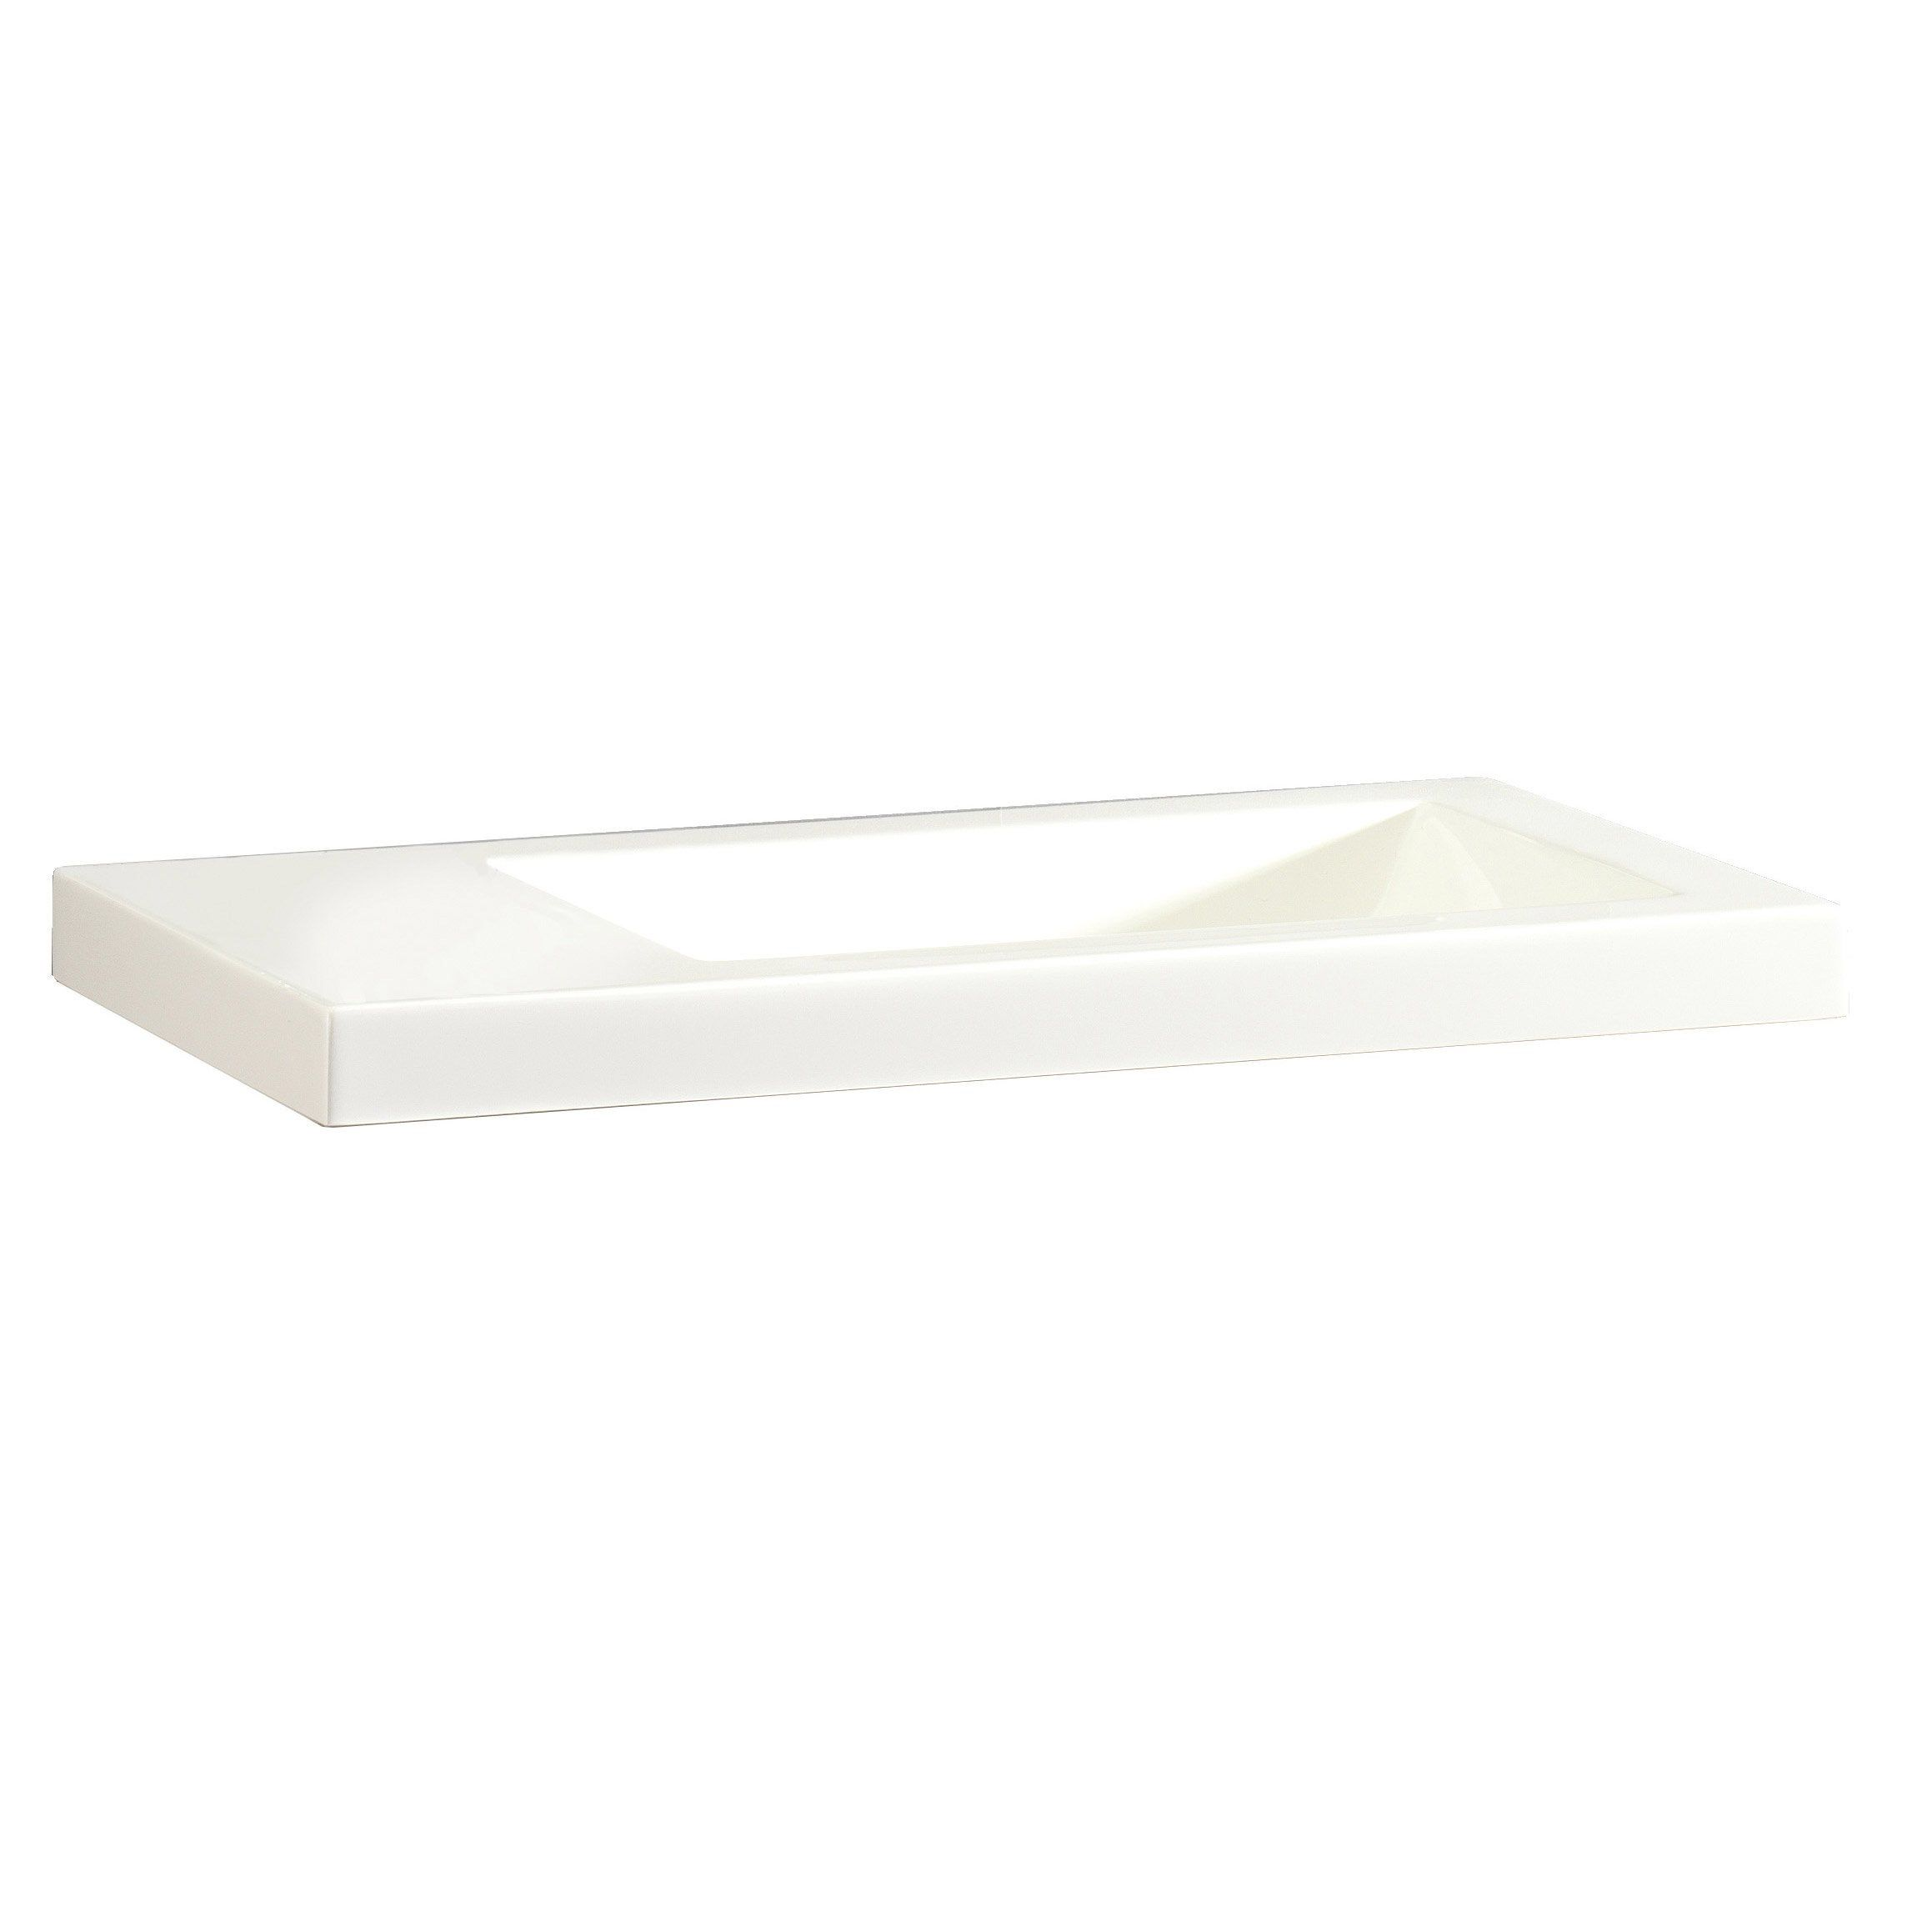 Lave Mains Resine Rectangle Blanc L 43 X P 23 Cm Nerea Lave Main Lave Et X 23